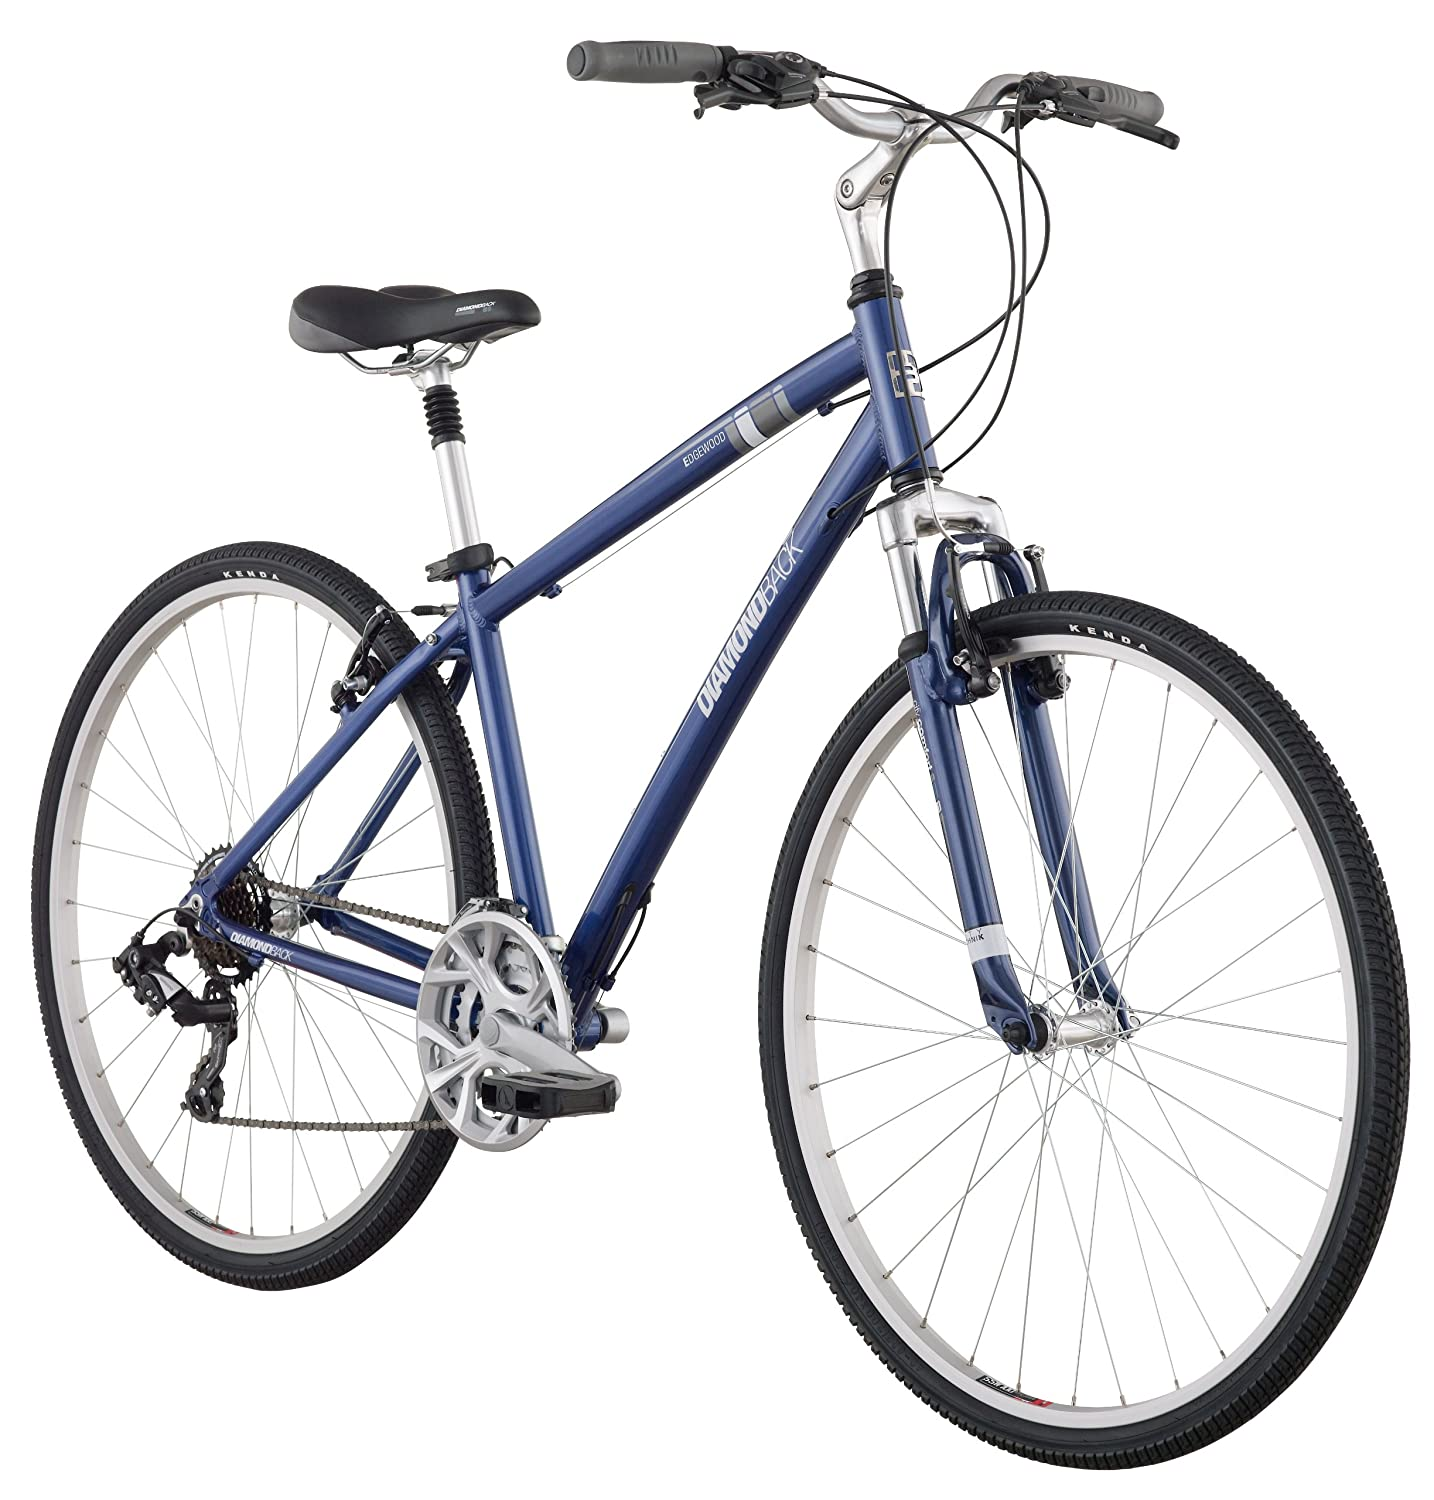 Bike Hybrid Wheels Edgewood Sport Hybrid Bike